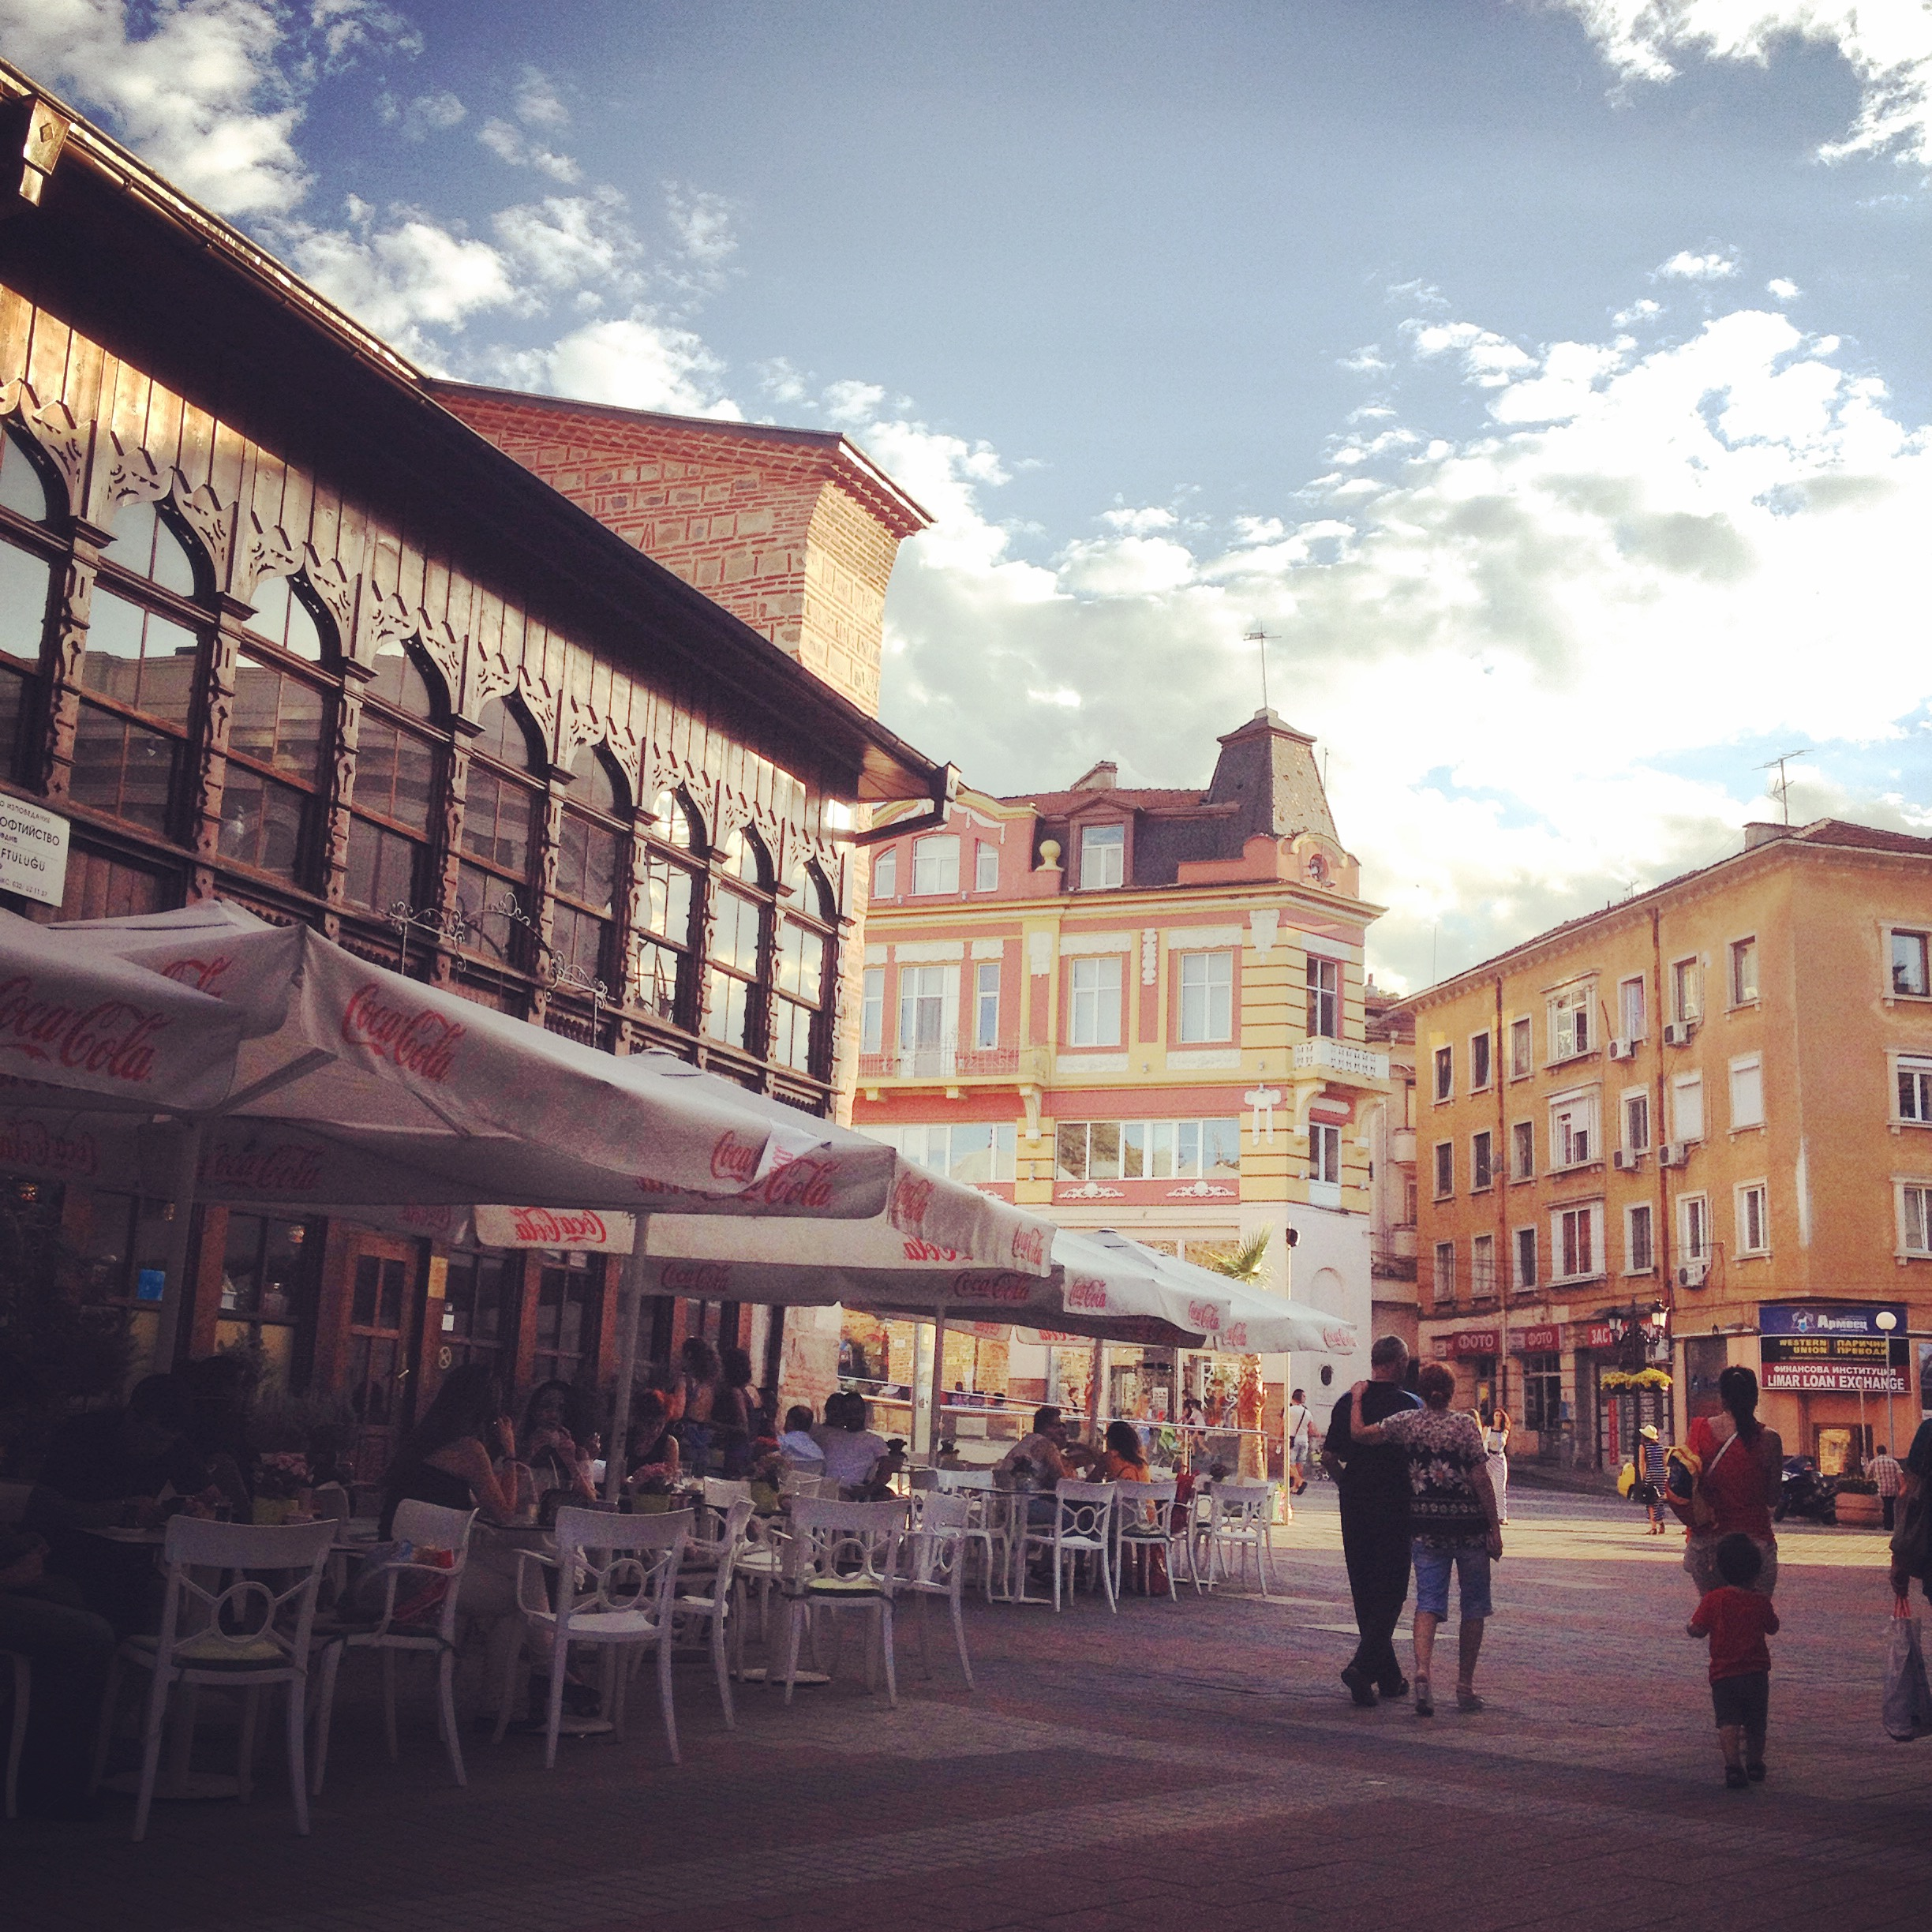 The streets of Plovdiv